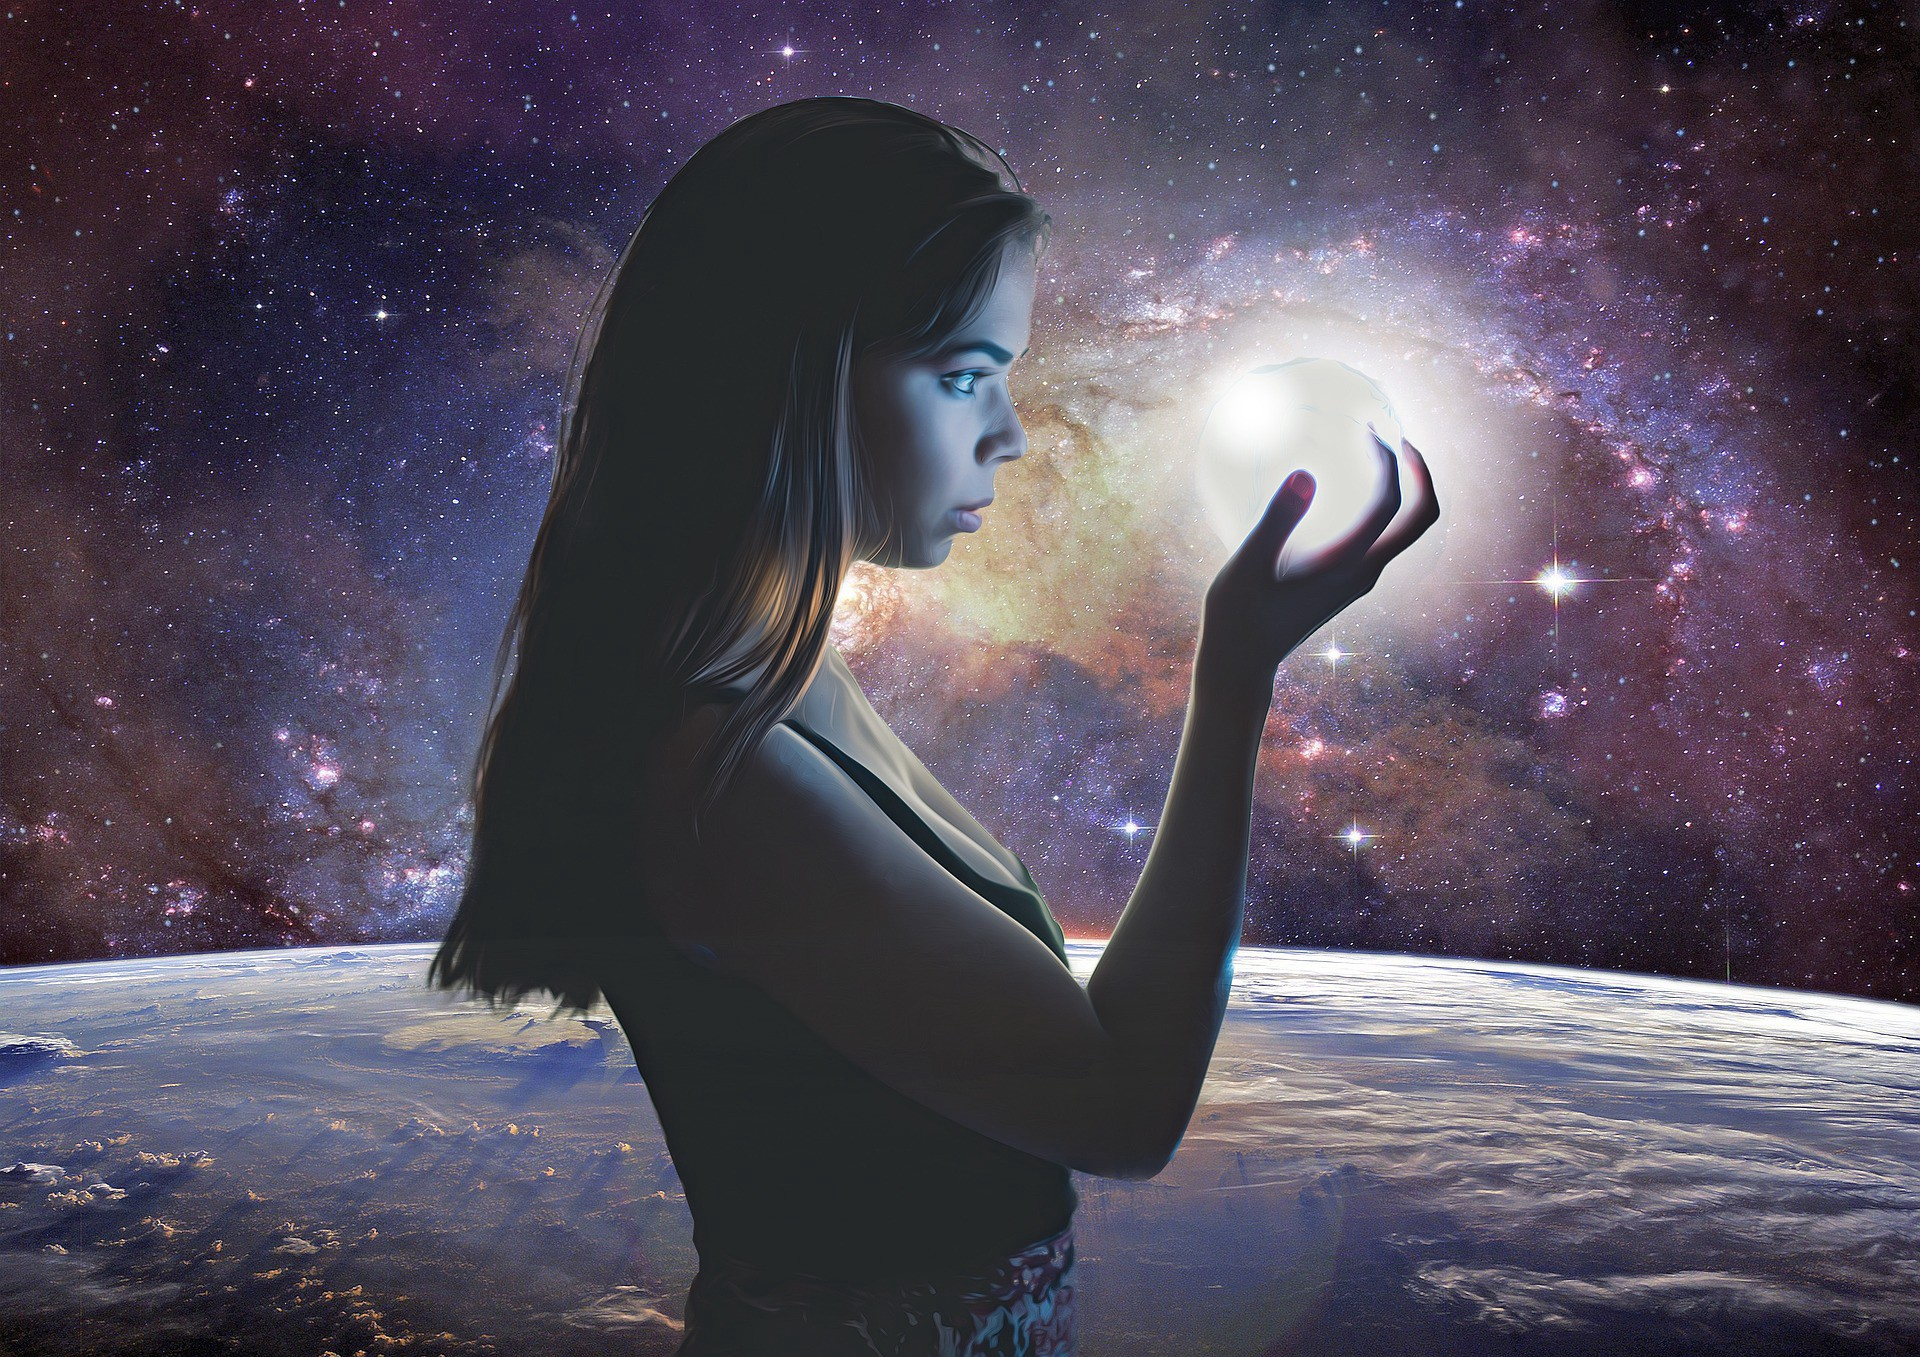 Girl holding a ball of light with space background.